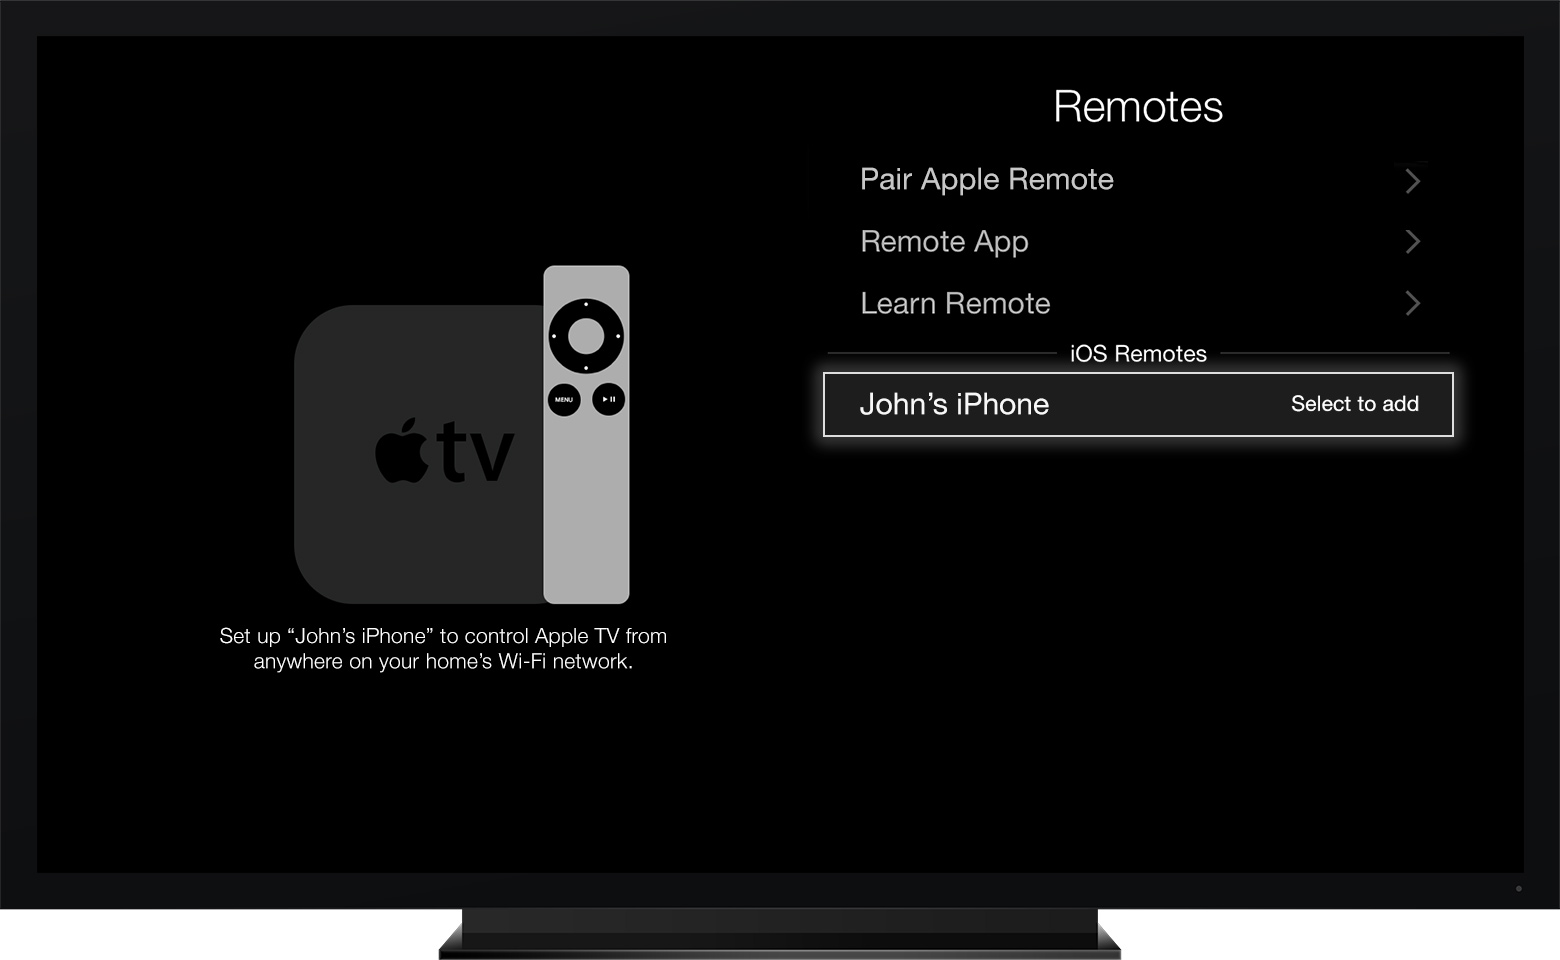 Select the name of your iOS device from Settings > General > Remotes.